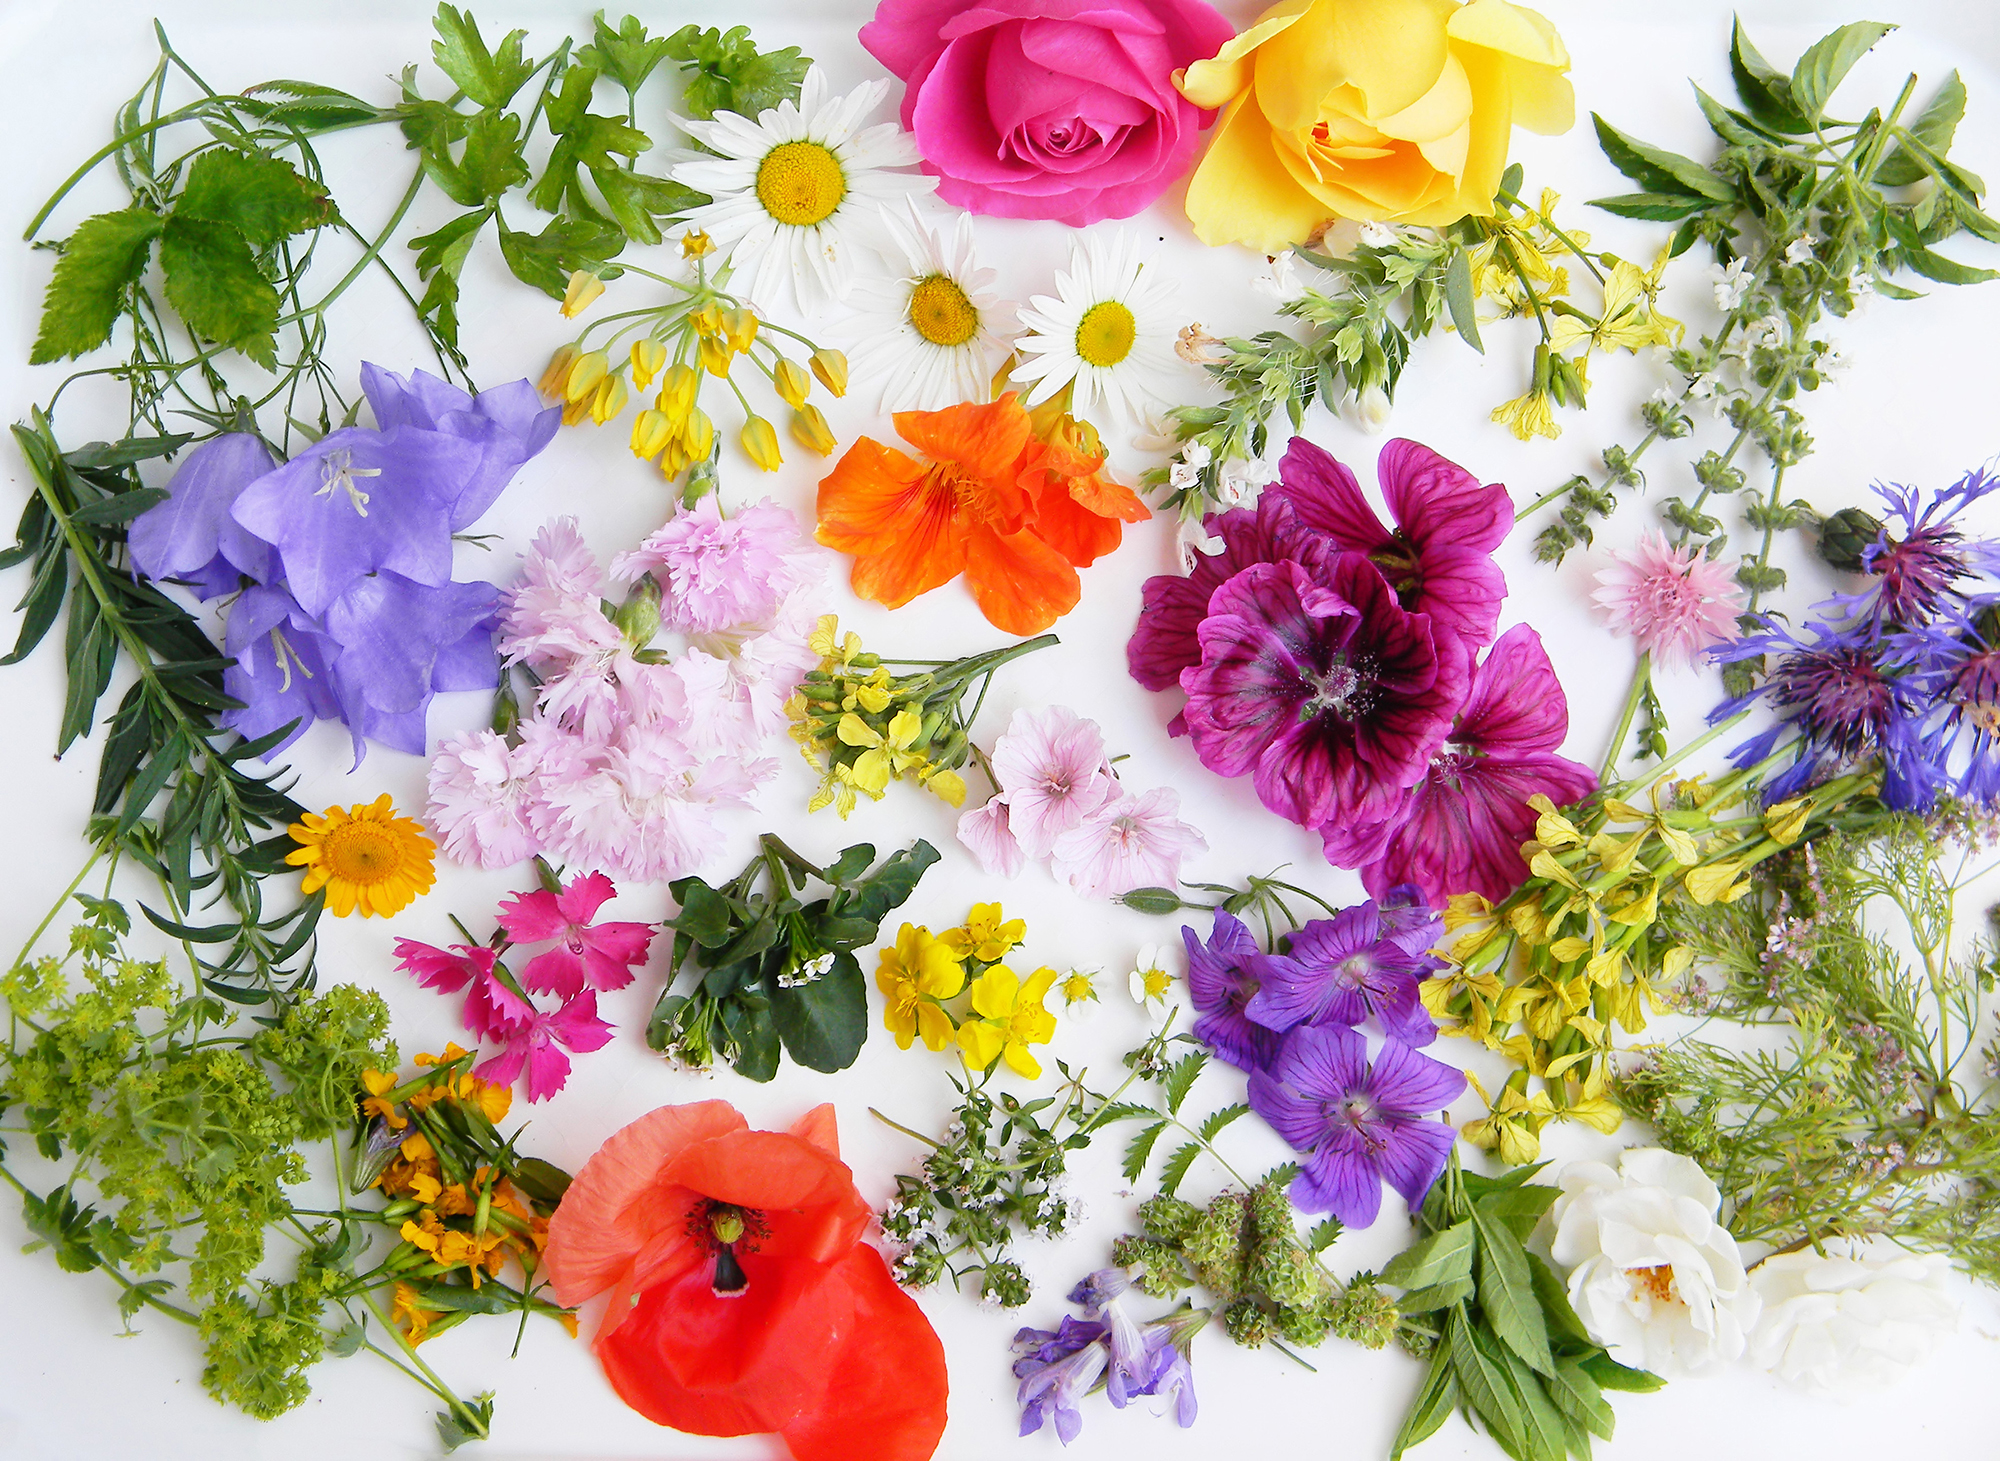 A list of edible flowers